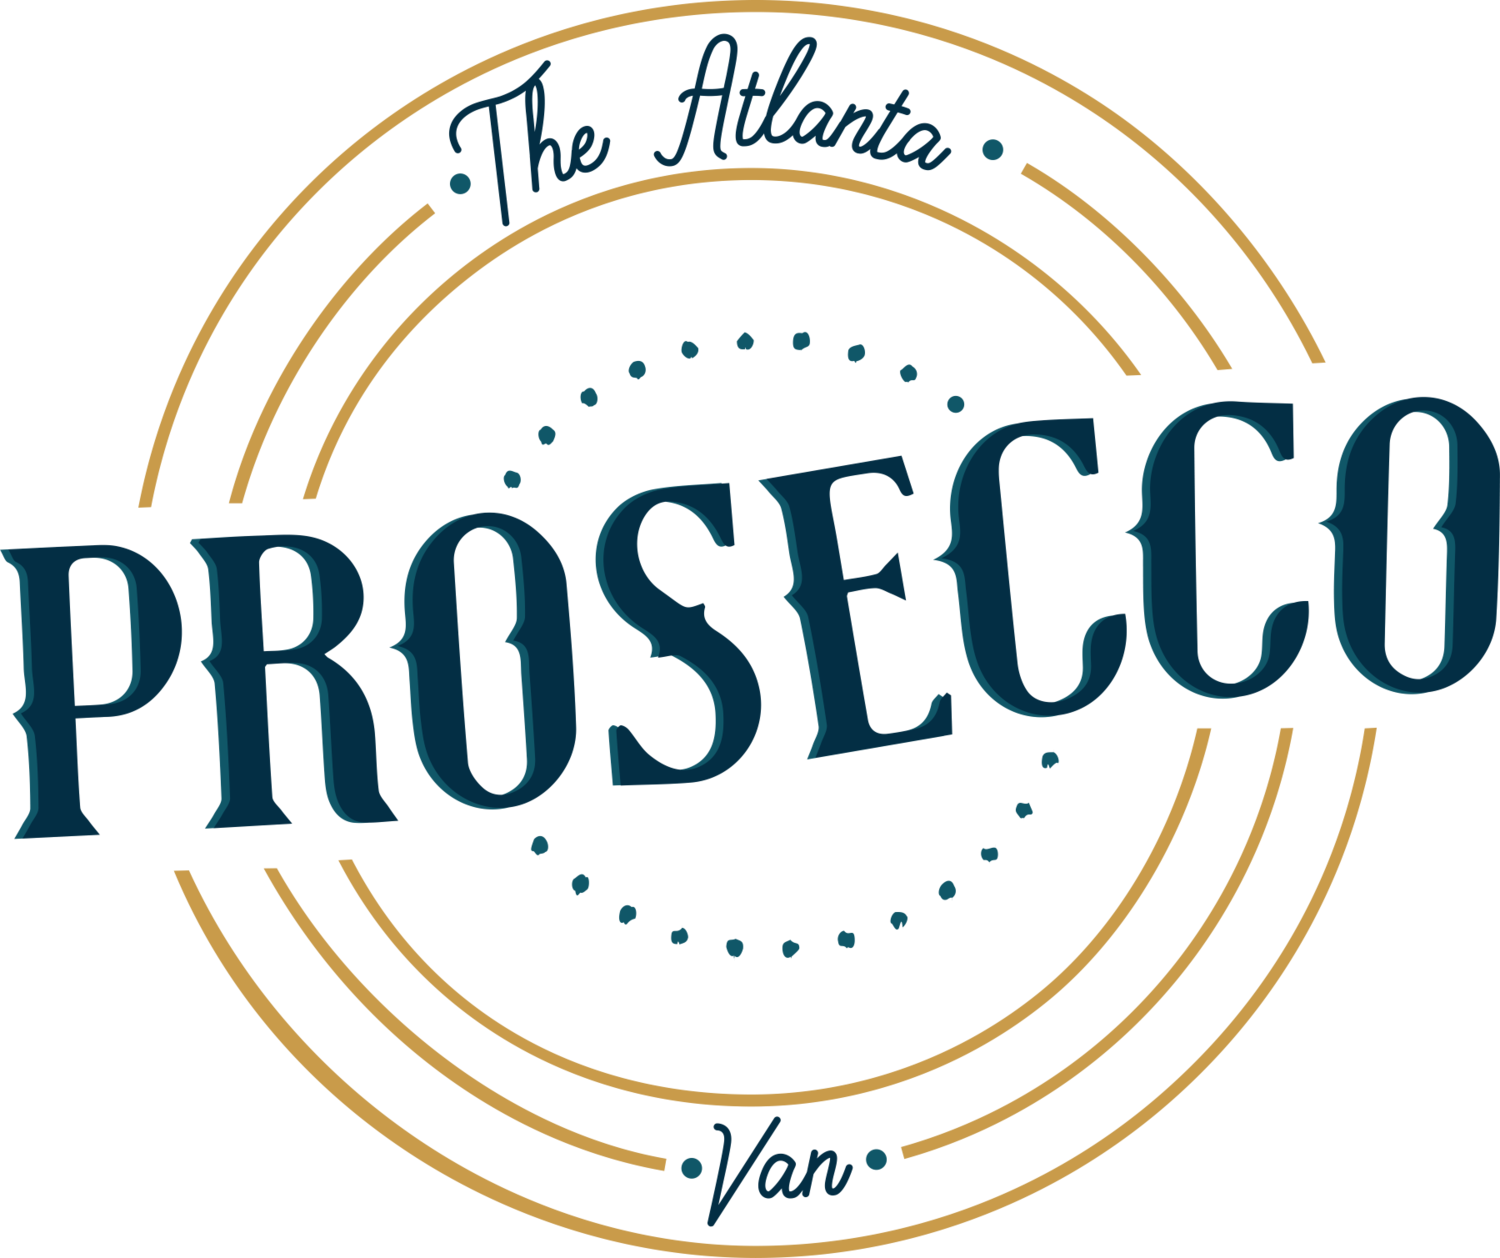 The Atlanta Prosecco Van